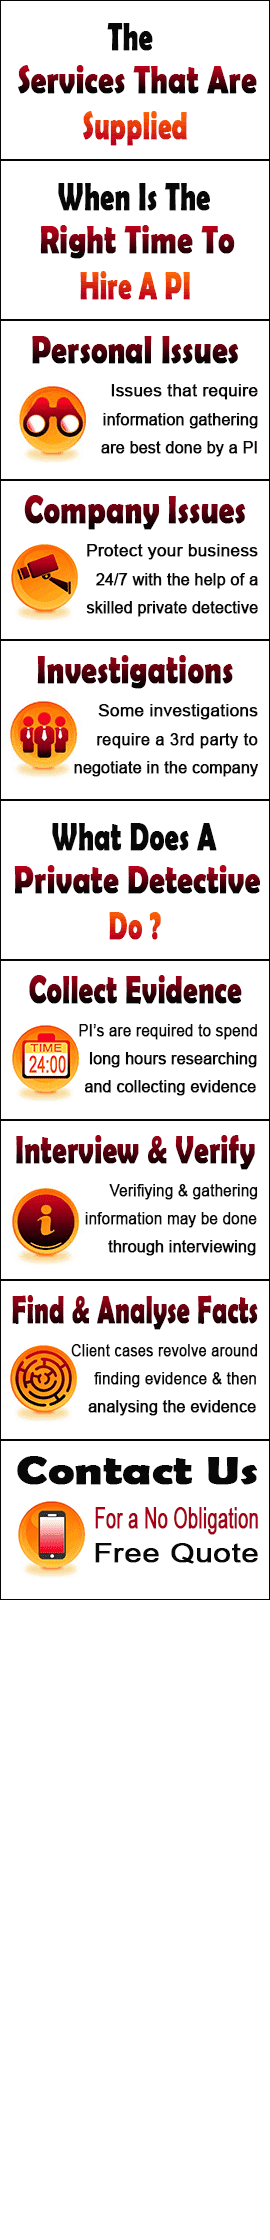 Services Supplied By Private Investigator Worthing In